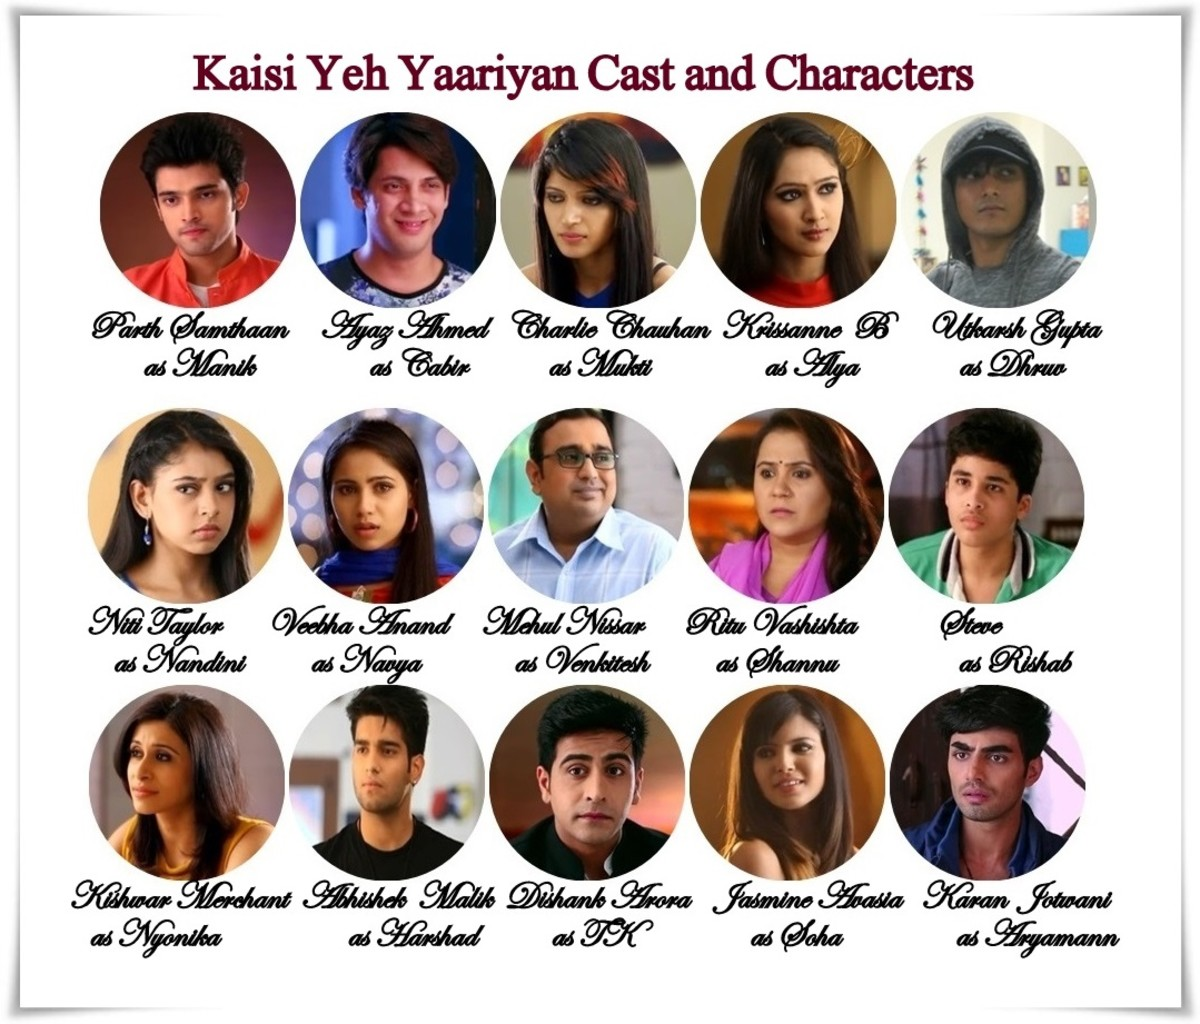 Kaisi Yeh Yaariyan Cast and Characters